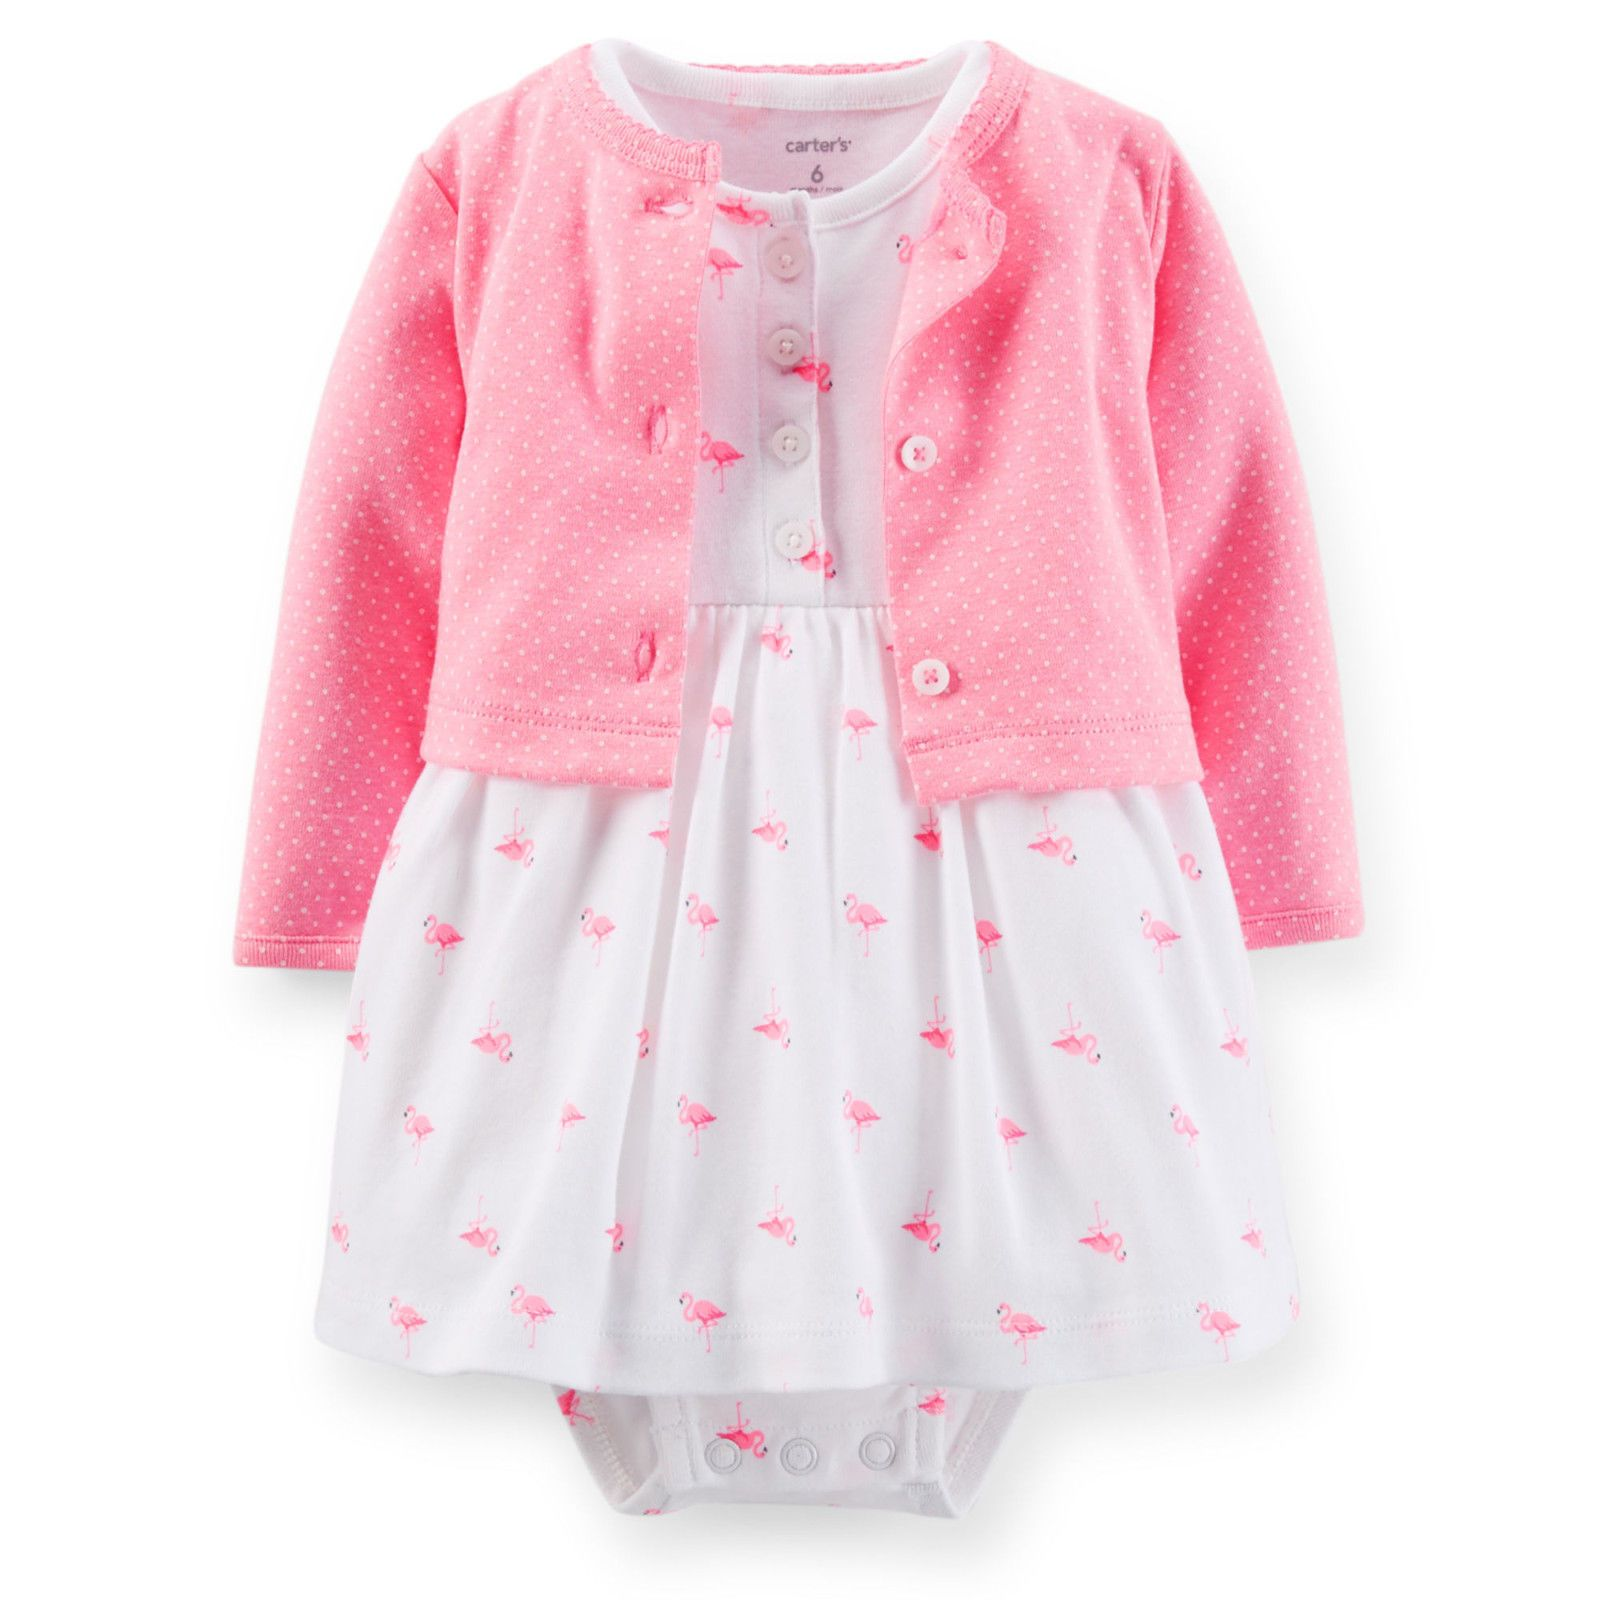 7b526d39b Carters Newborn 3 6 9 12 Months Cardigan   Dress Set Baby Girl ...